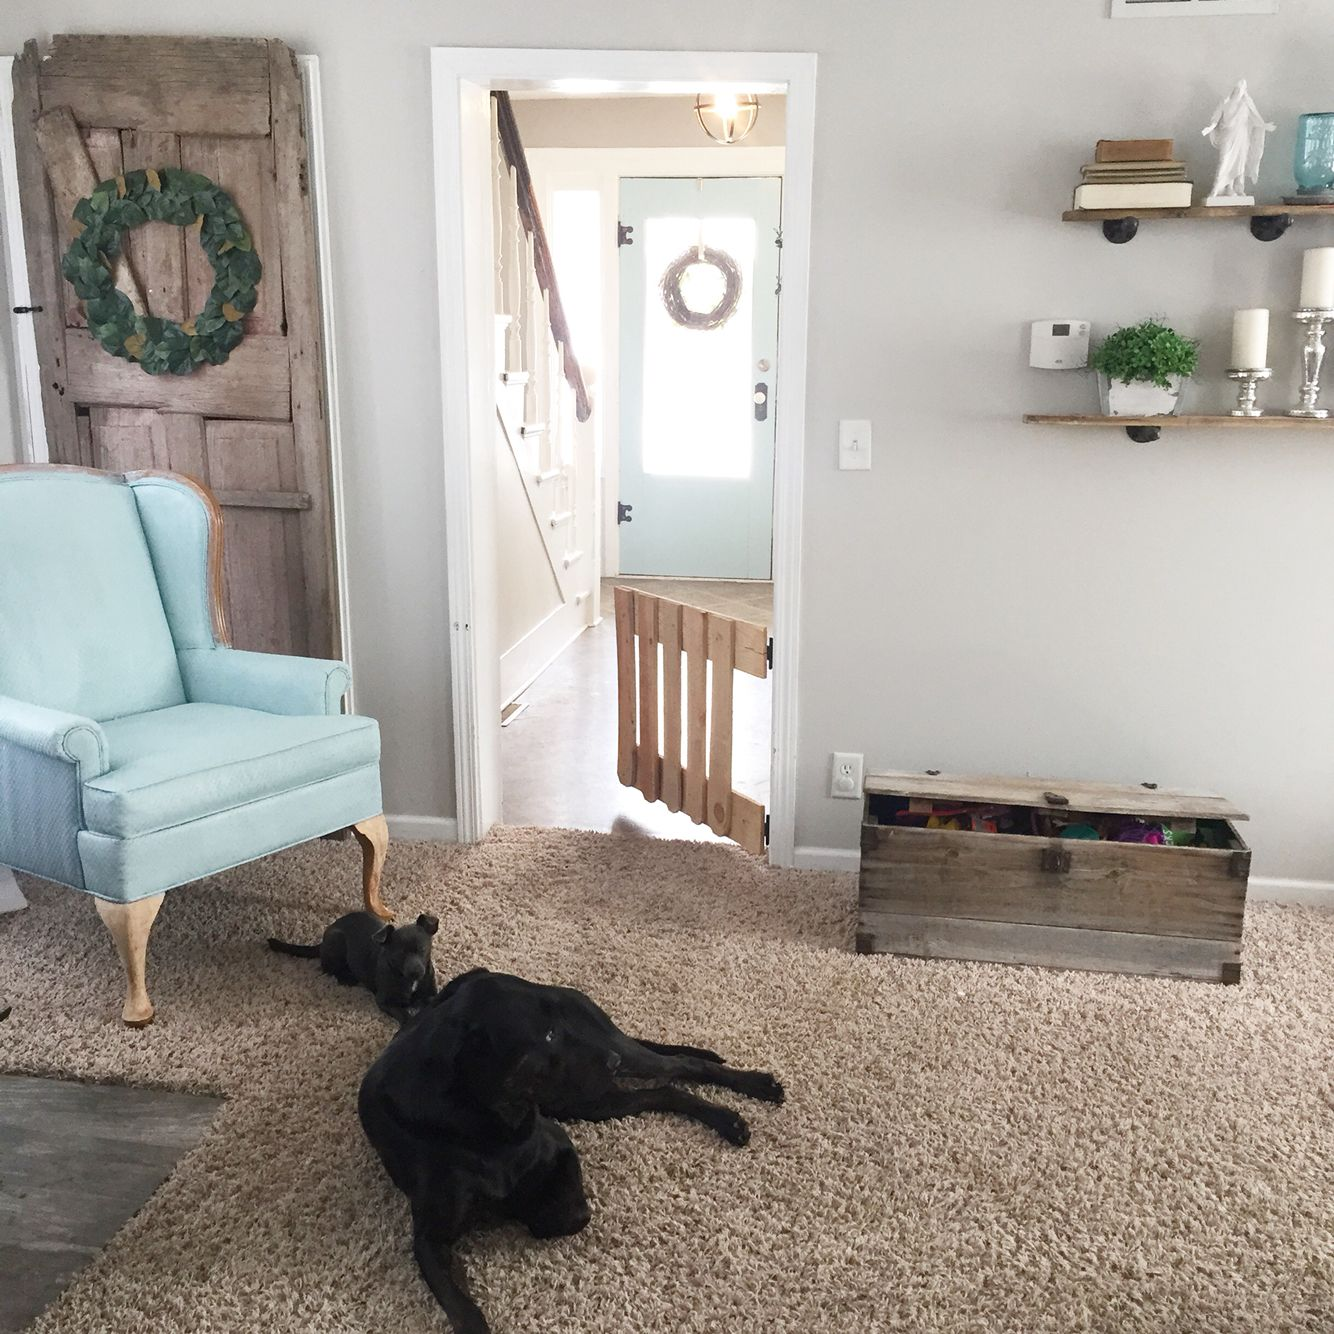 Farmhouse style DIY baby gate bArn door sherwin Williams repose gray ...